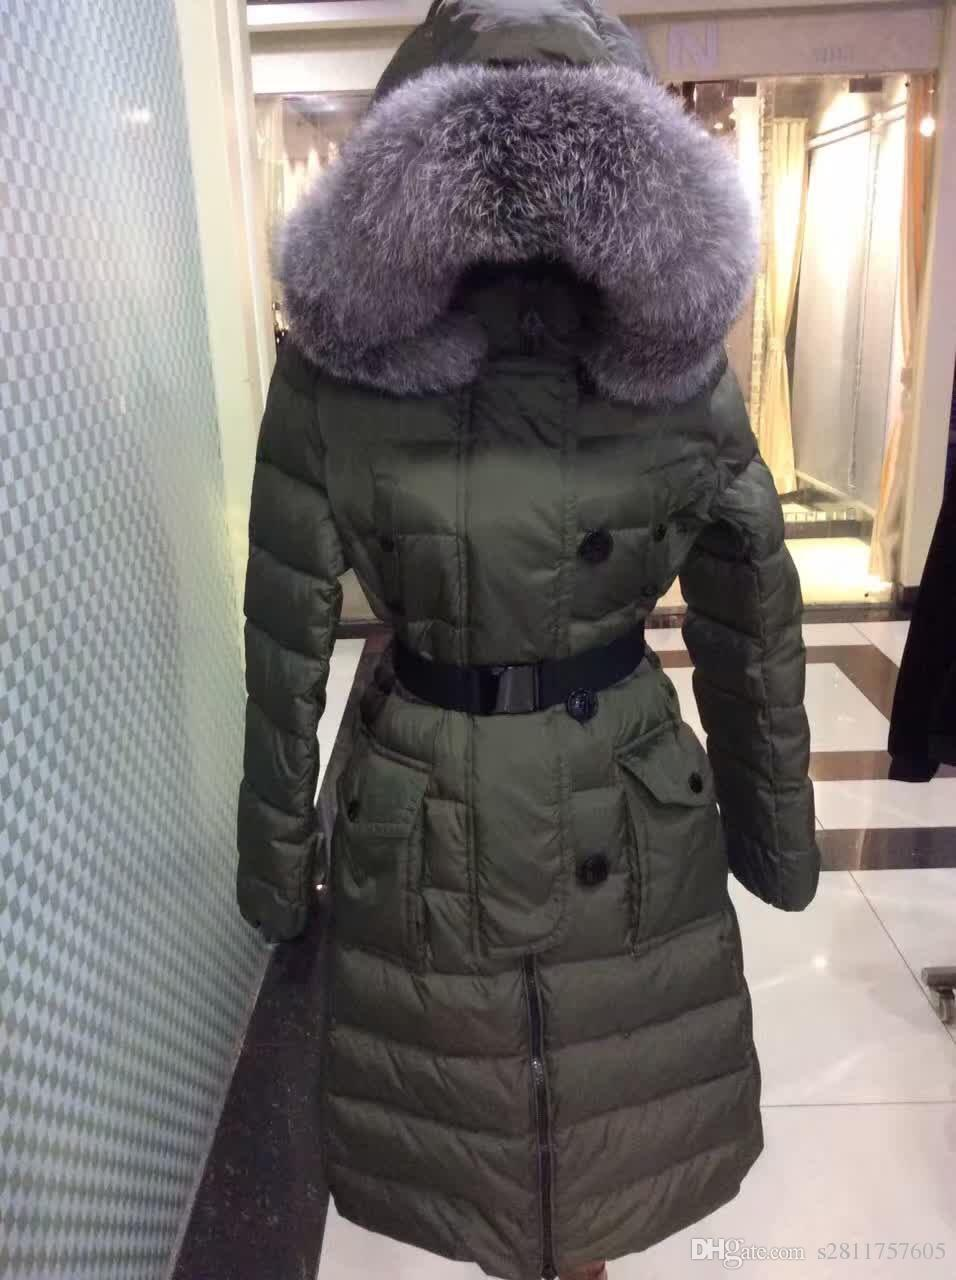 Parka Jacket Women Fur Hood Online | Jacket Women Fur Hood Down